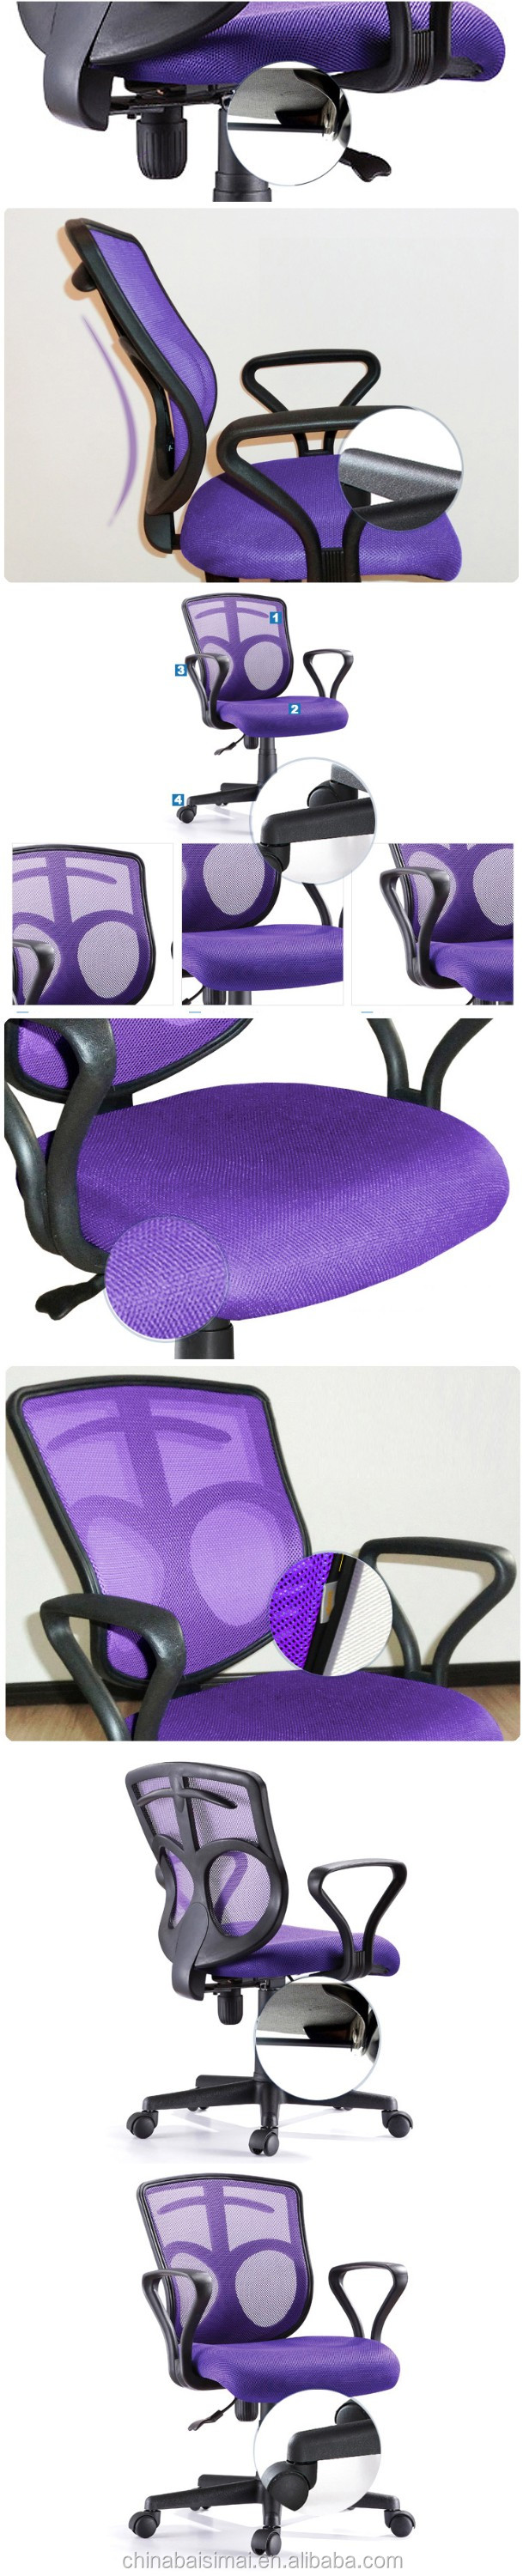 D09# Popular ergonomic swivel office mesh chair, office chair with strong mesh, various colors mesh office chair